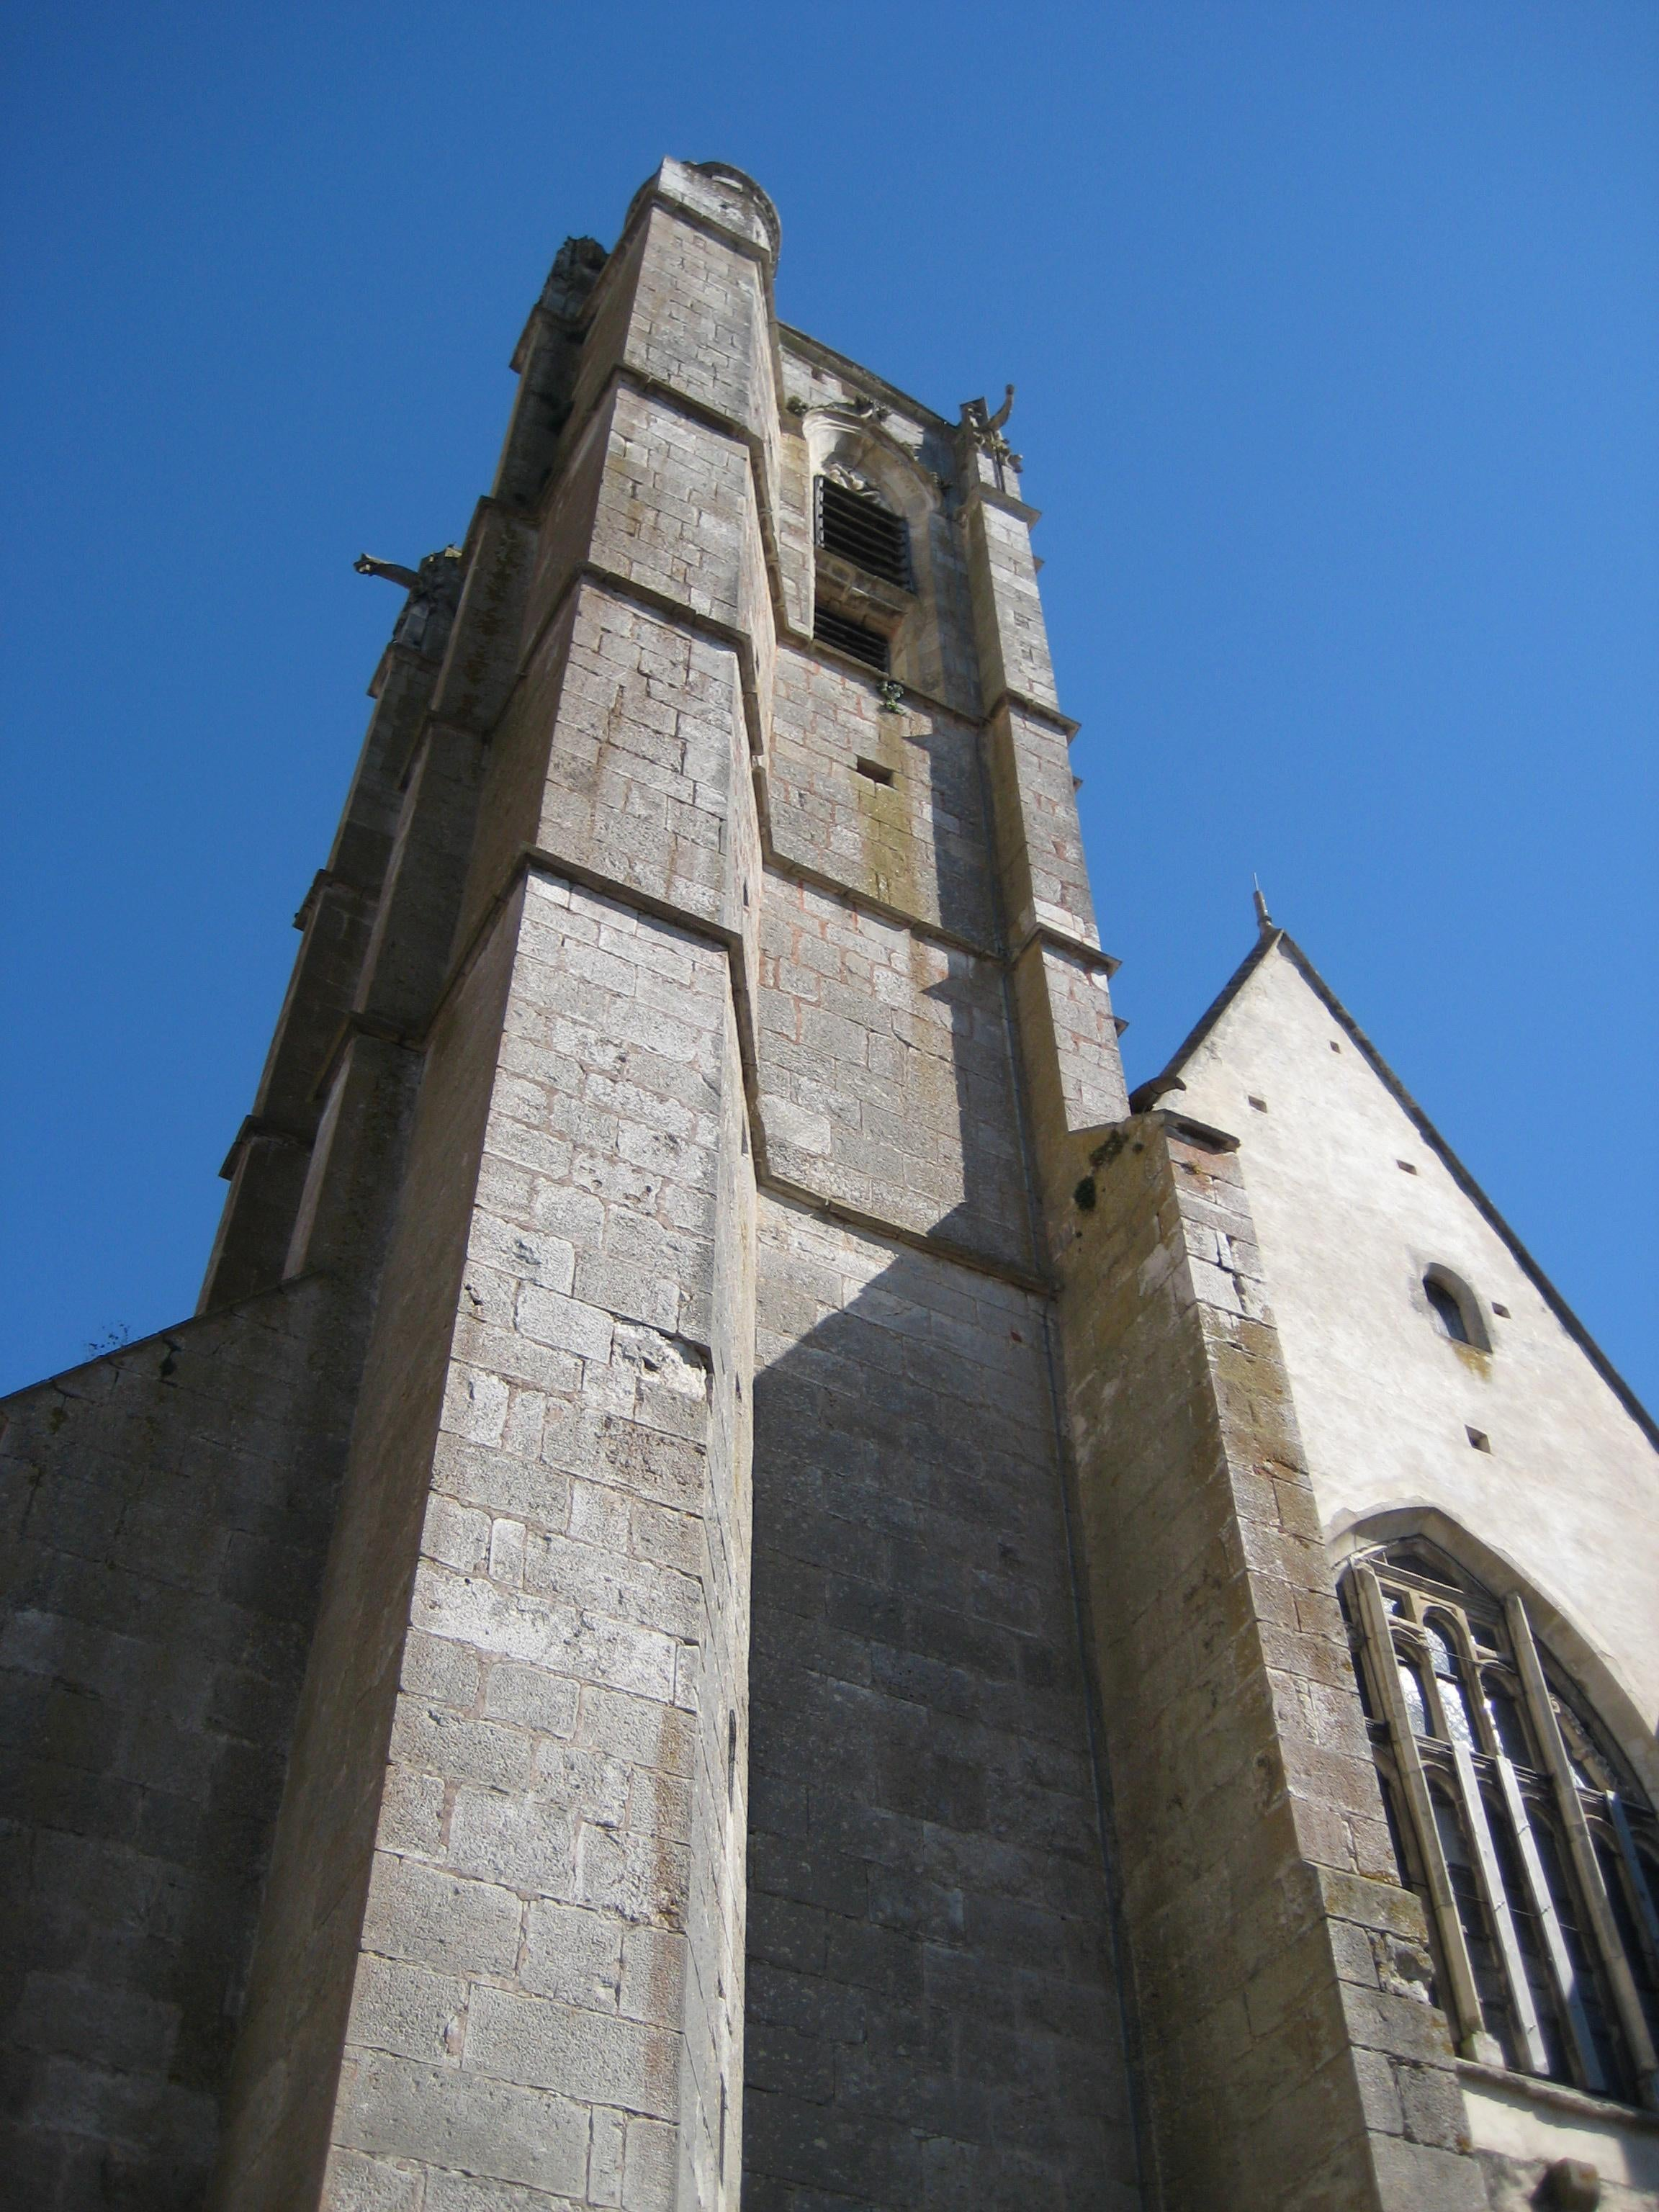 Architecture in Noyers